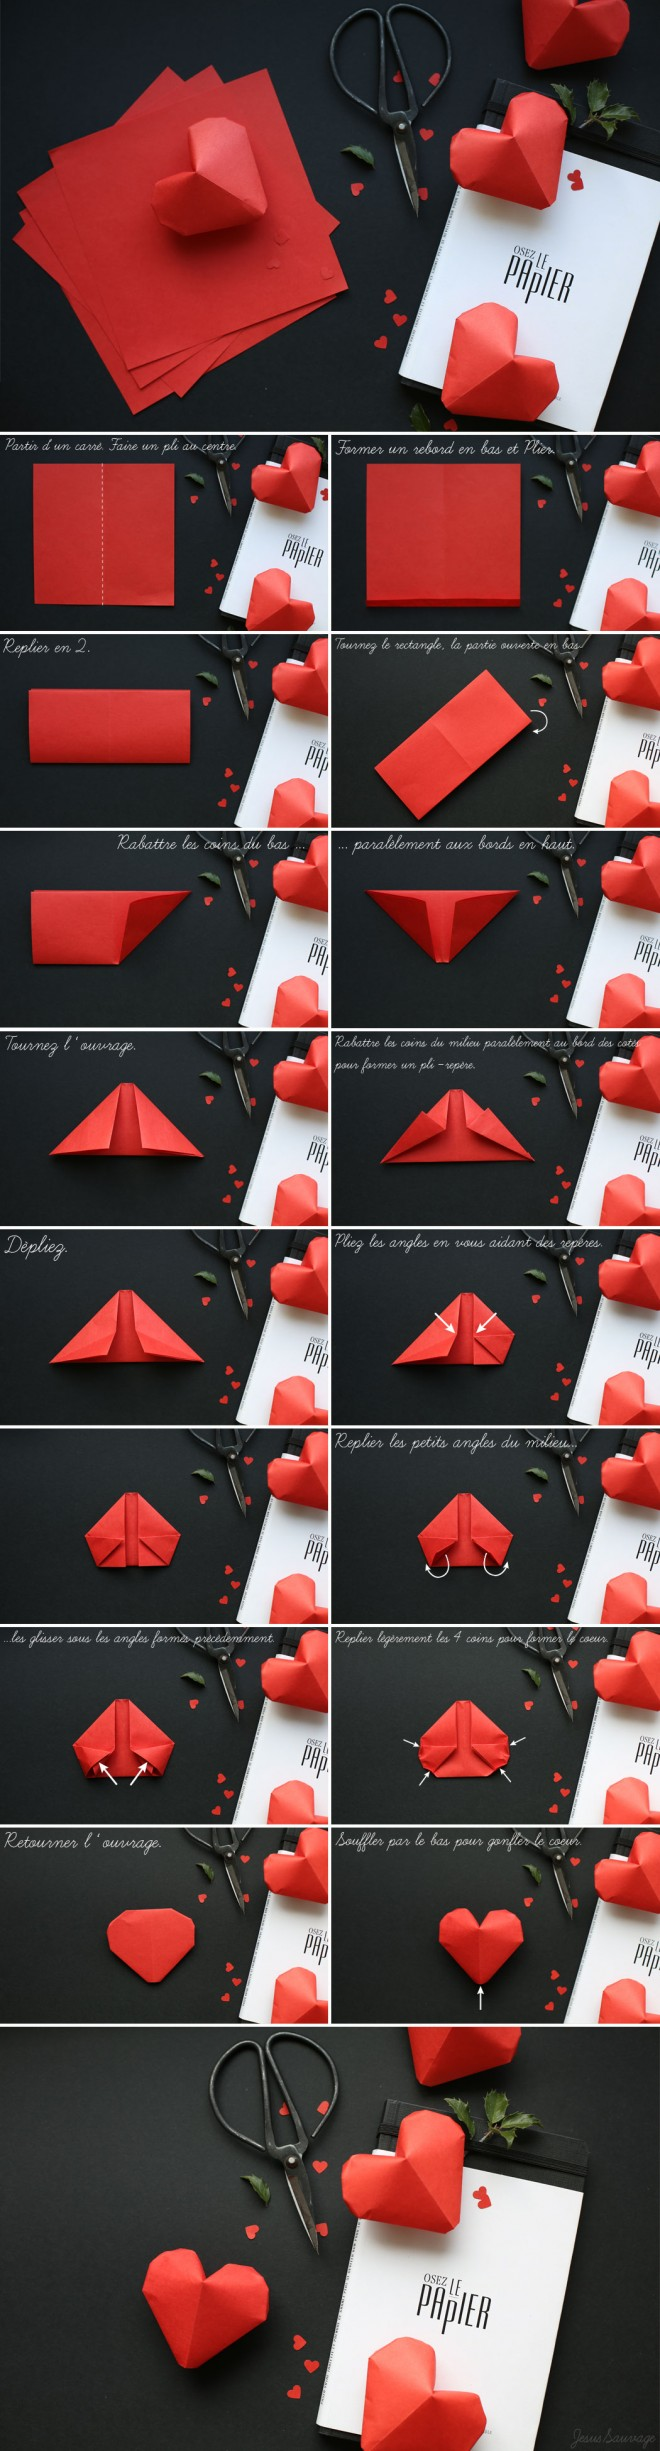 how to fold lovely 3d origami hearts how to instructions